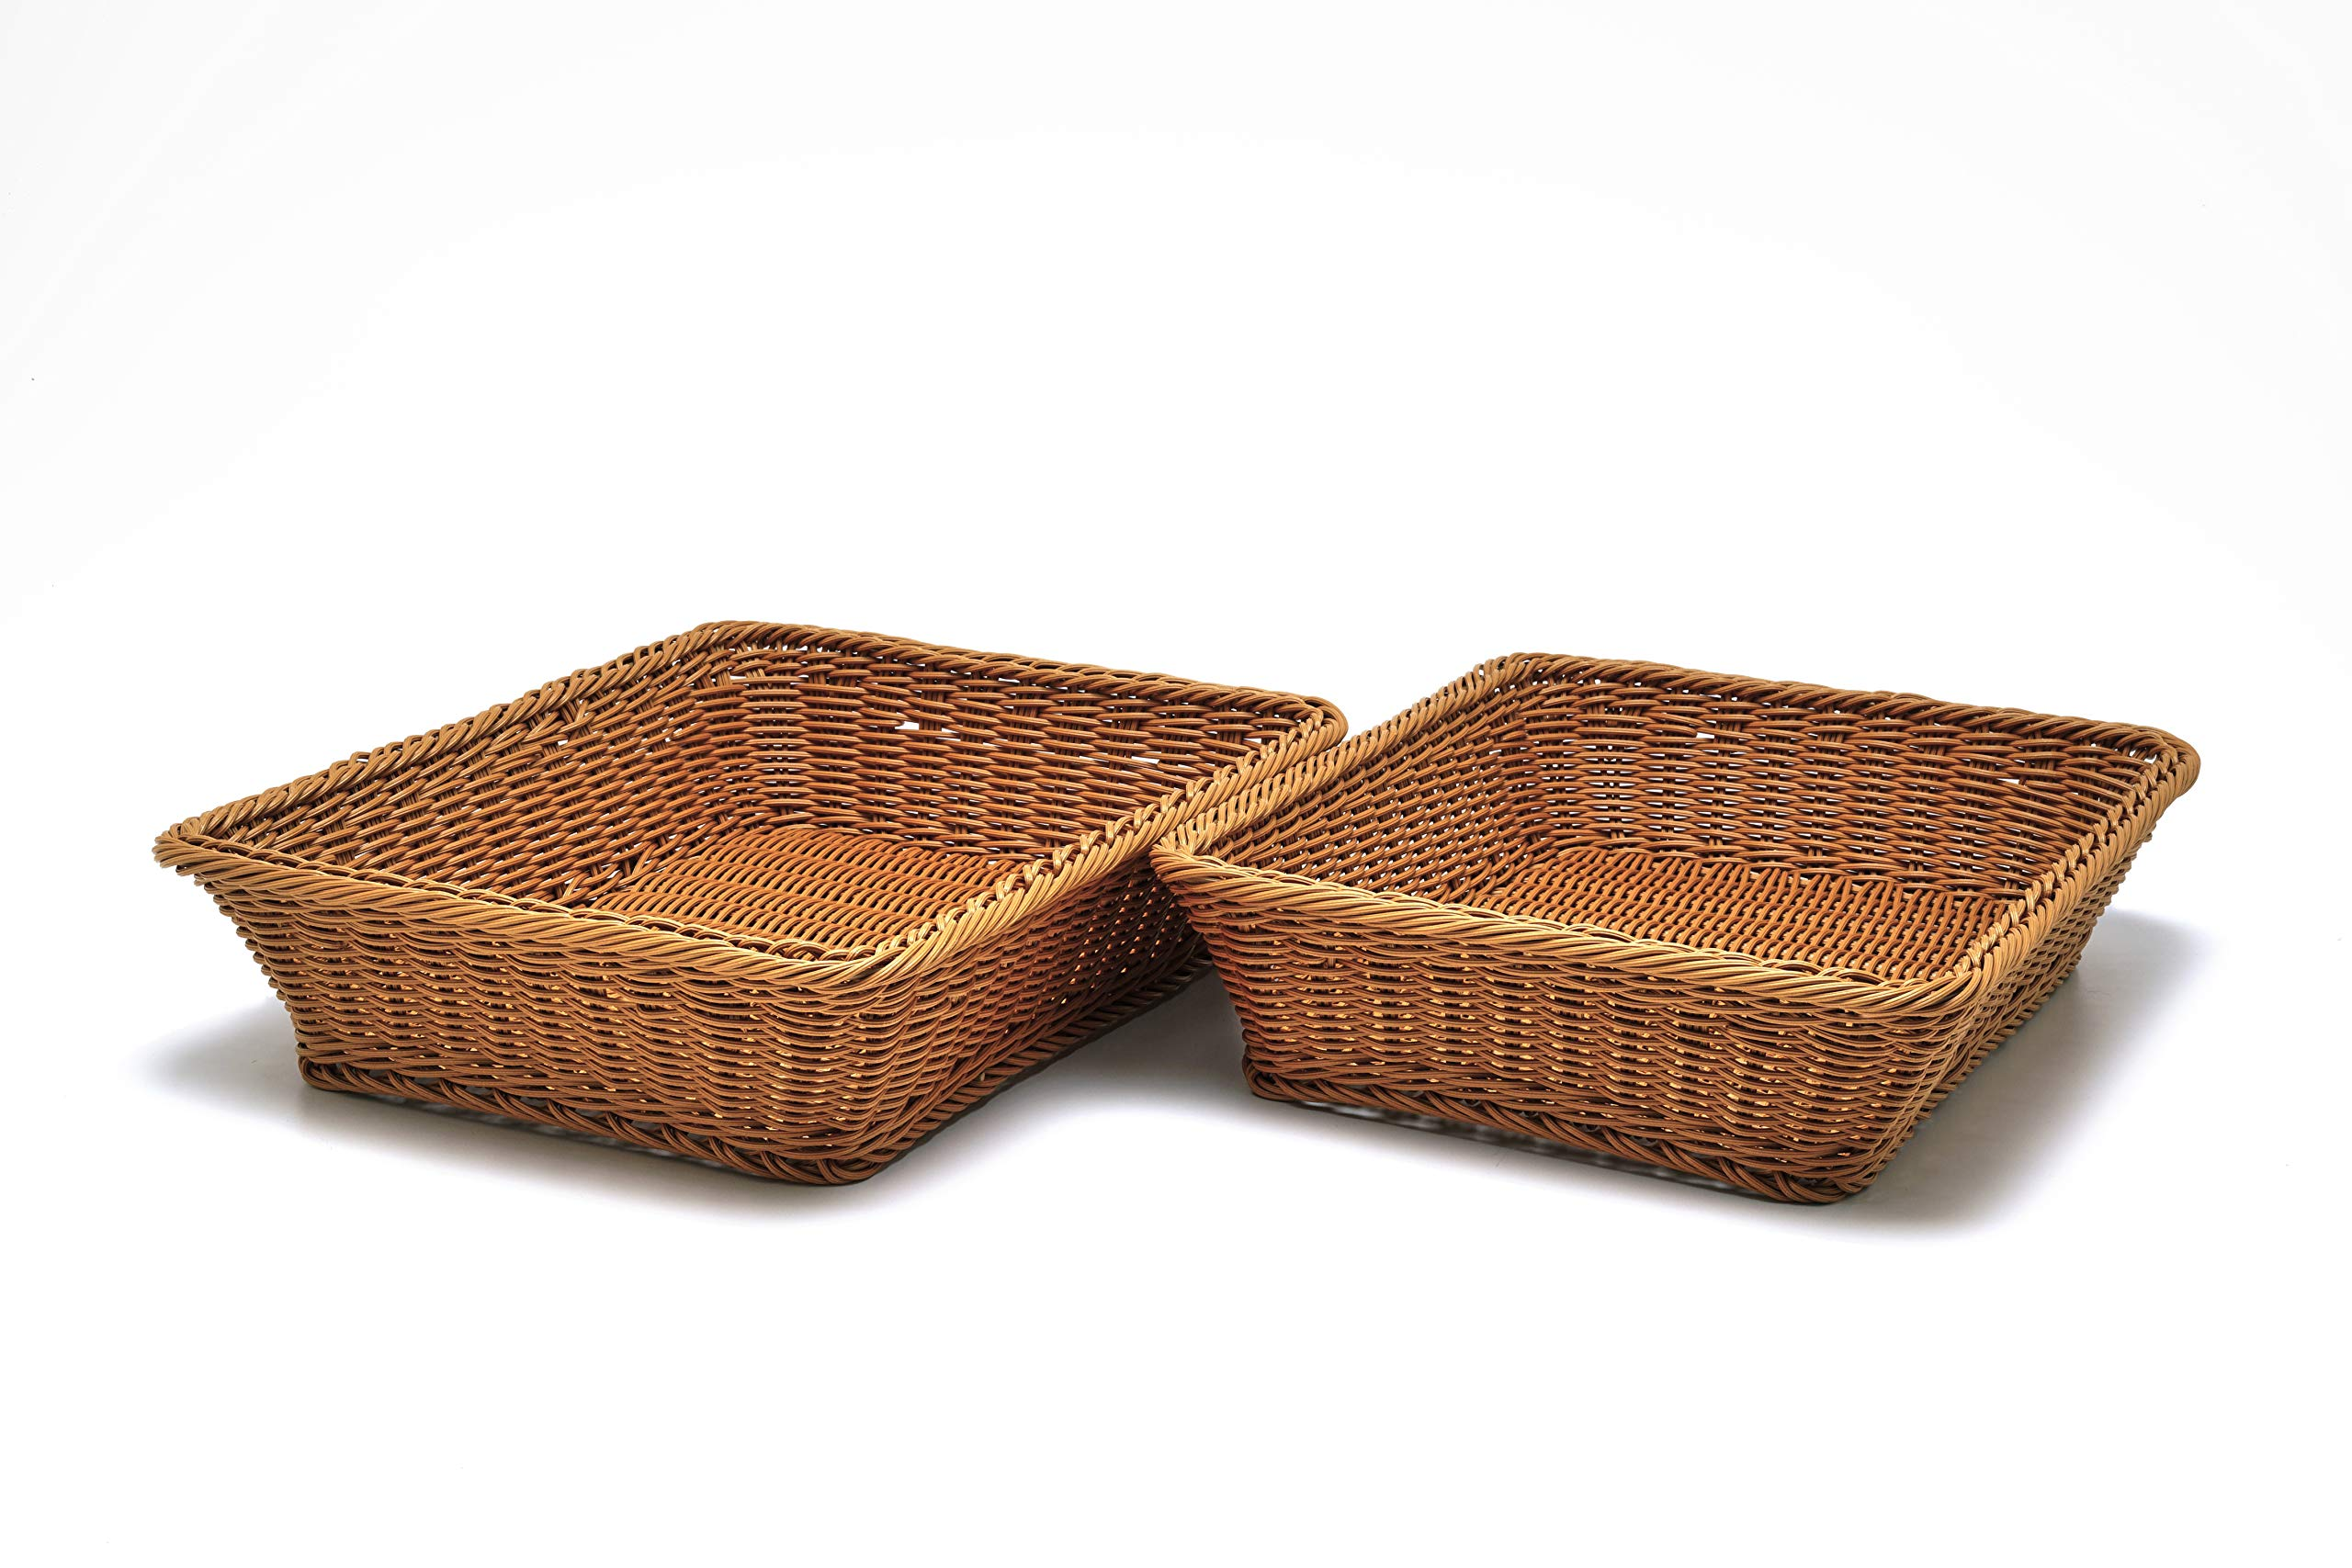 2 Pc Set of Rectangular Baskets for Tabletop or Counter Display | For Serving Bread, Fruits and Vegetables | Wicker Woven Storage Basket for Market, Spa, Salon, Bakery and Boutique Shop 16 x 12 x 3.5'' by orio